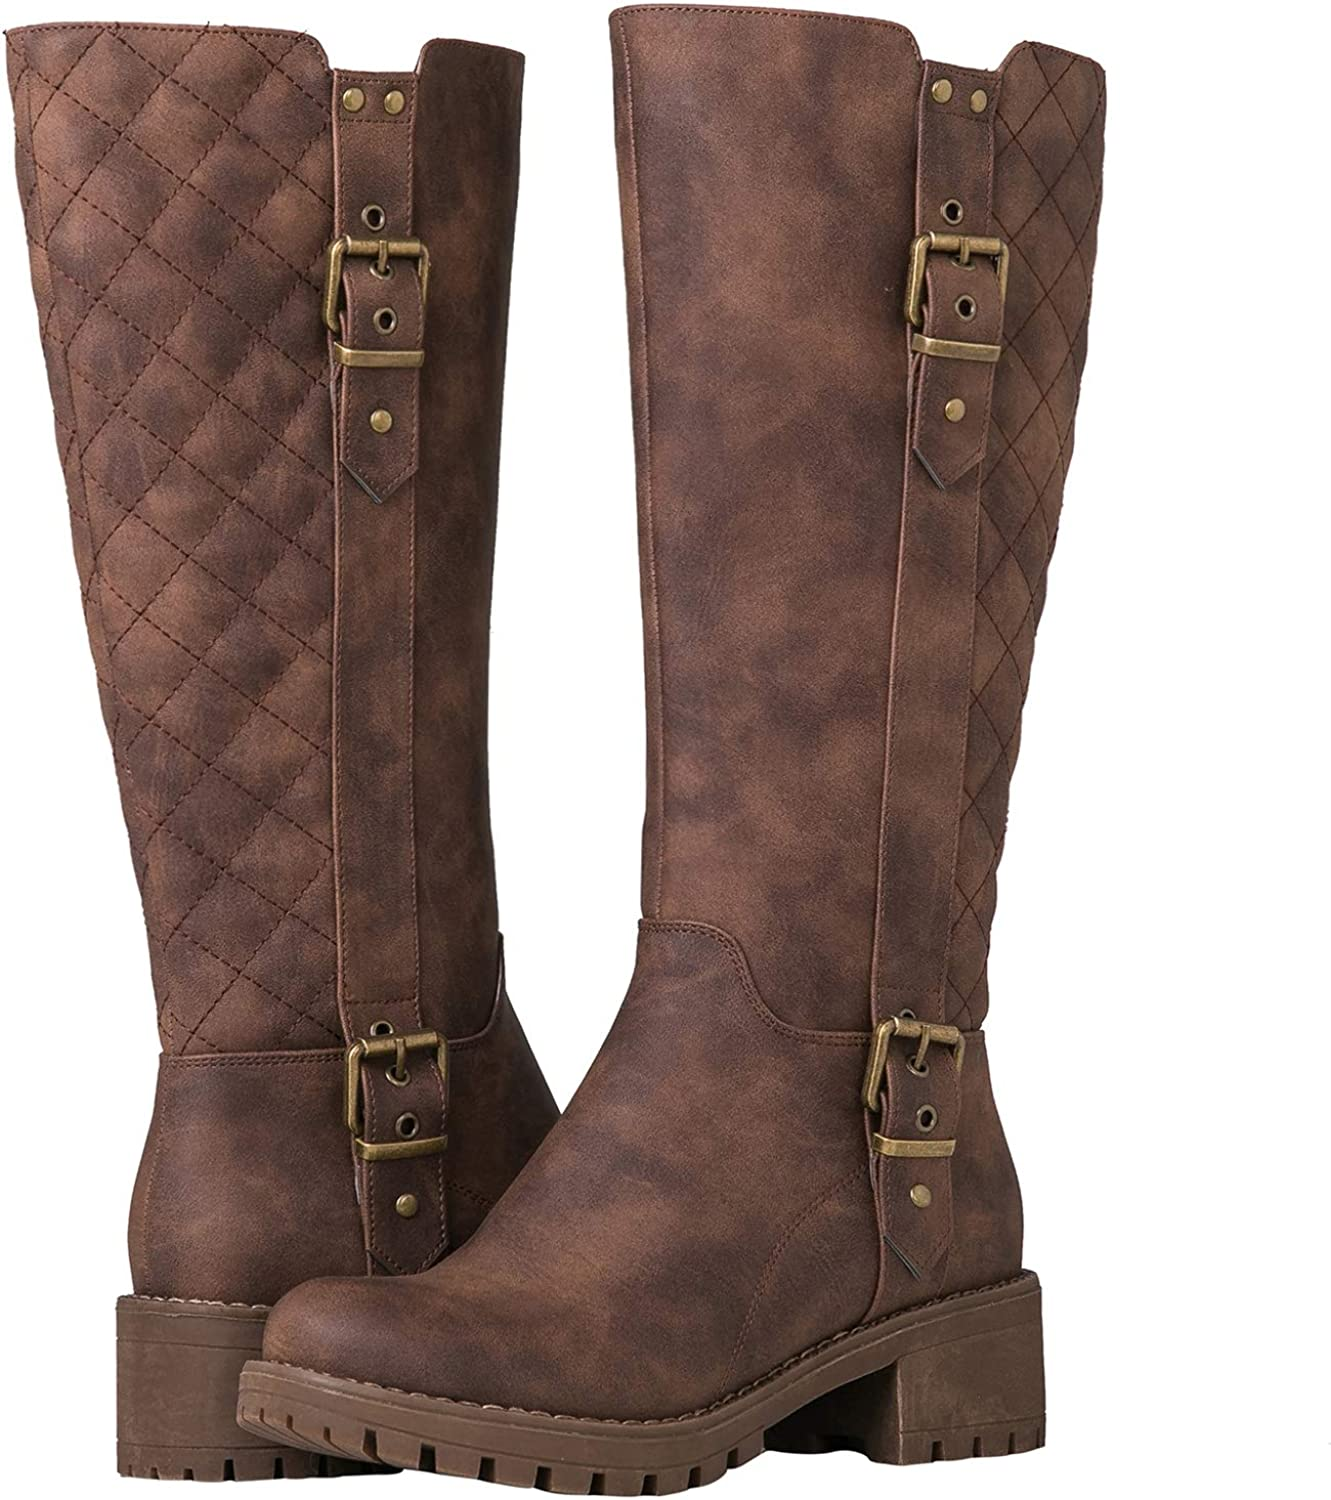 GLOBALWIN Women's The Strider's Boots